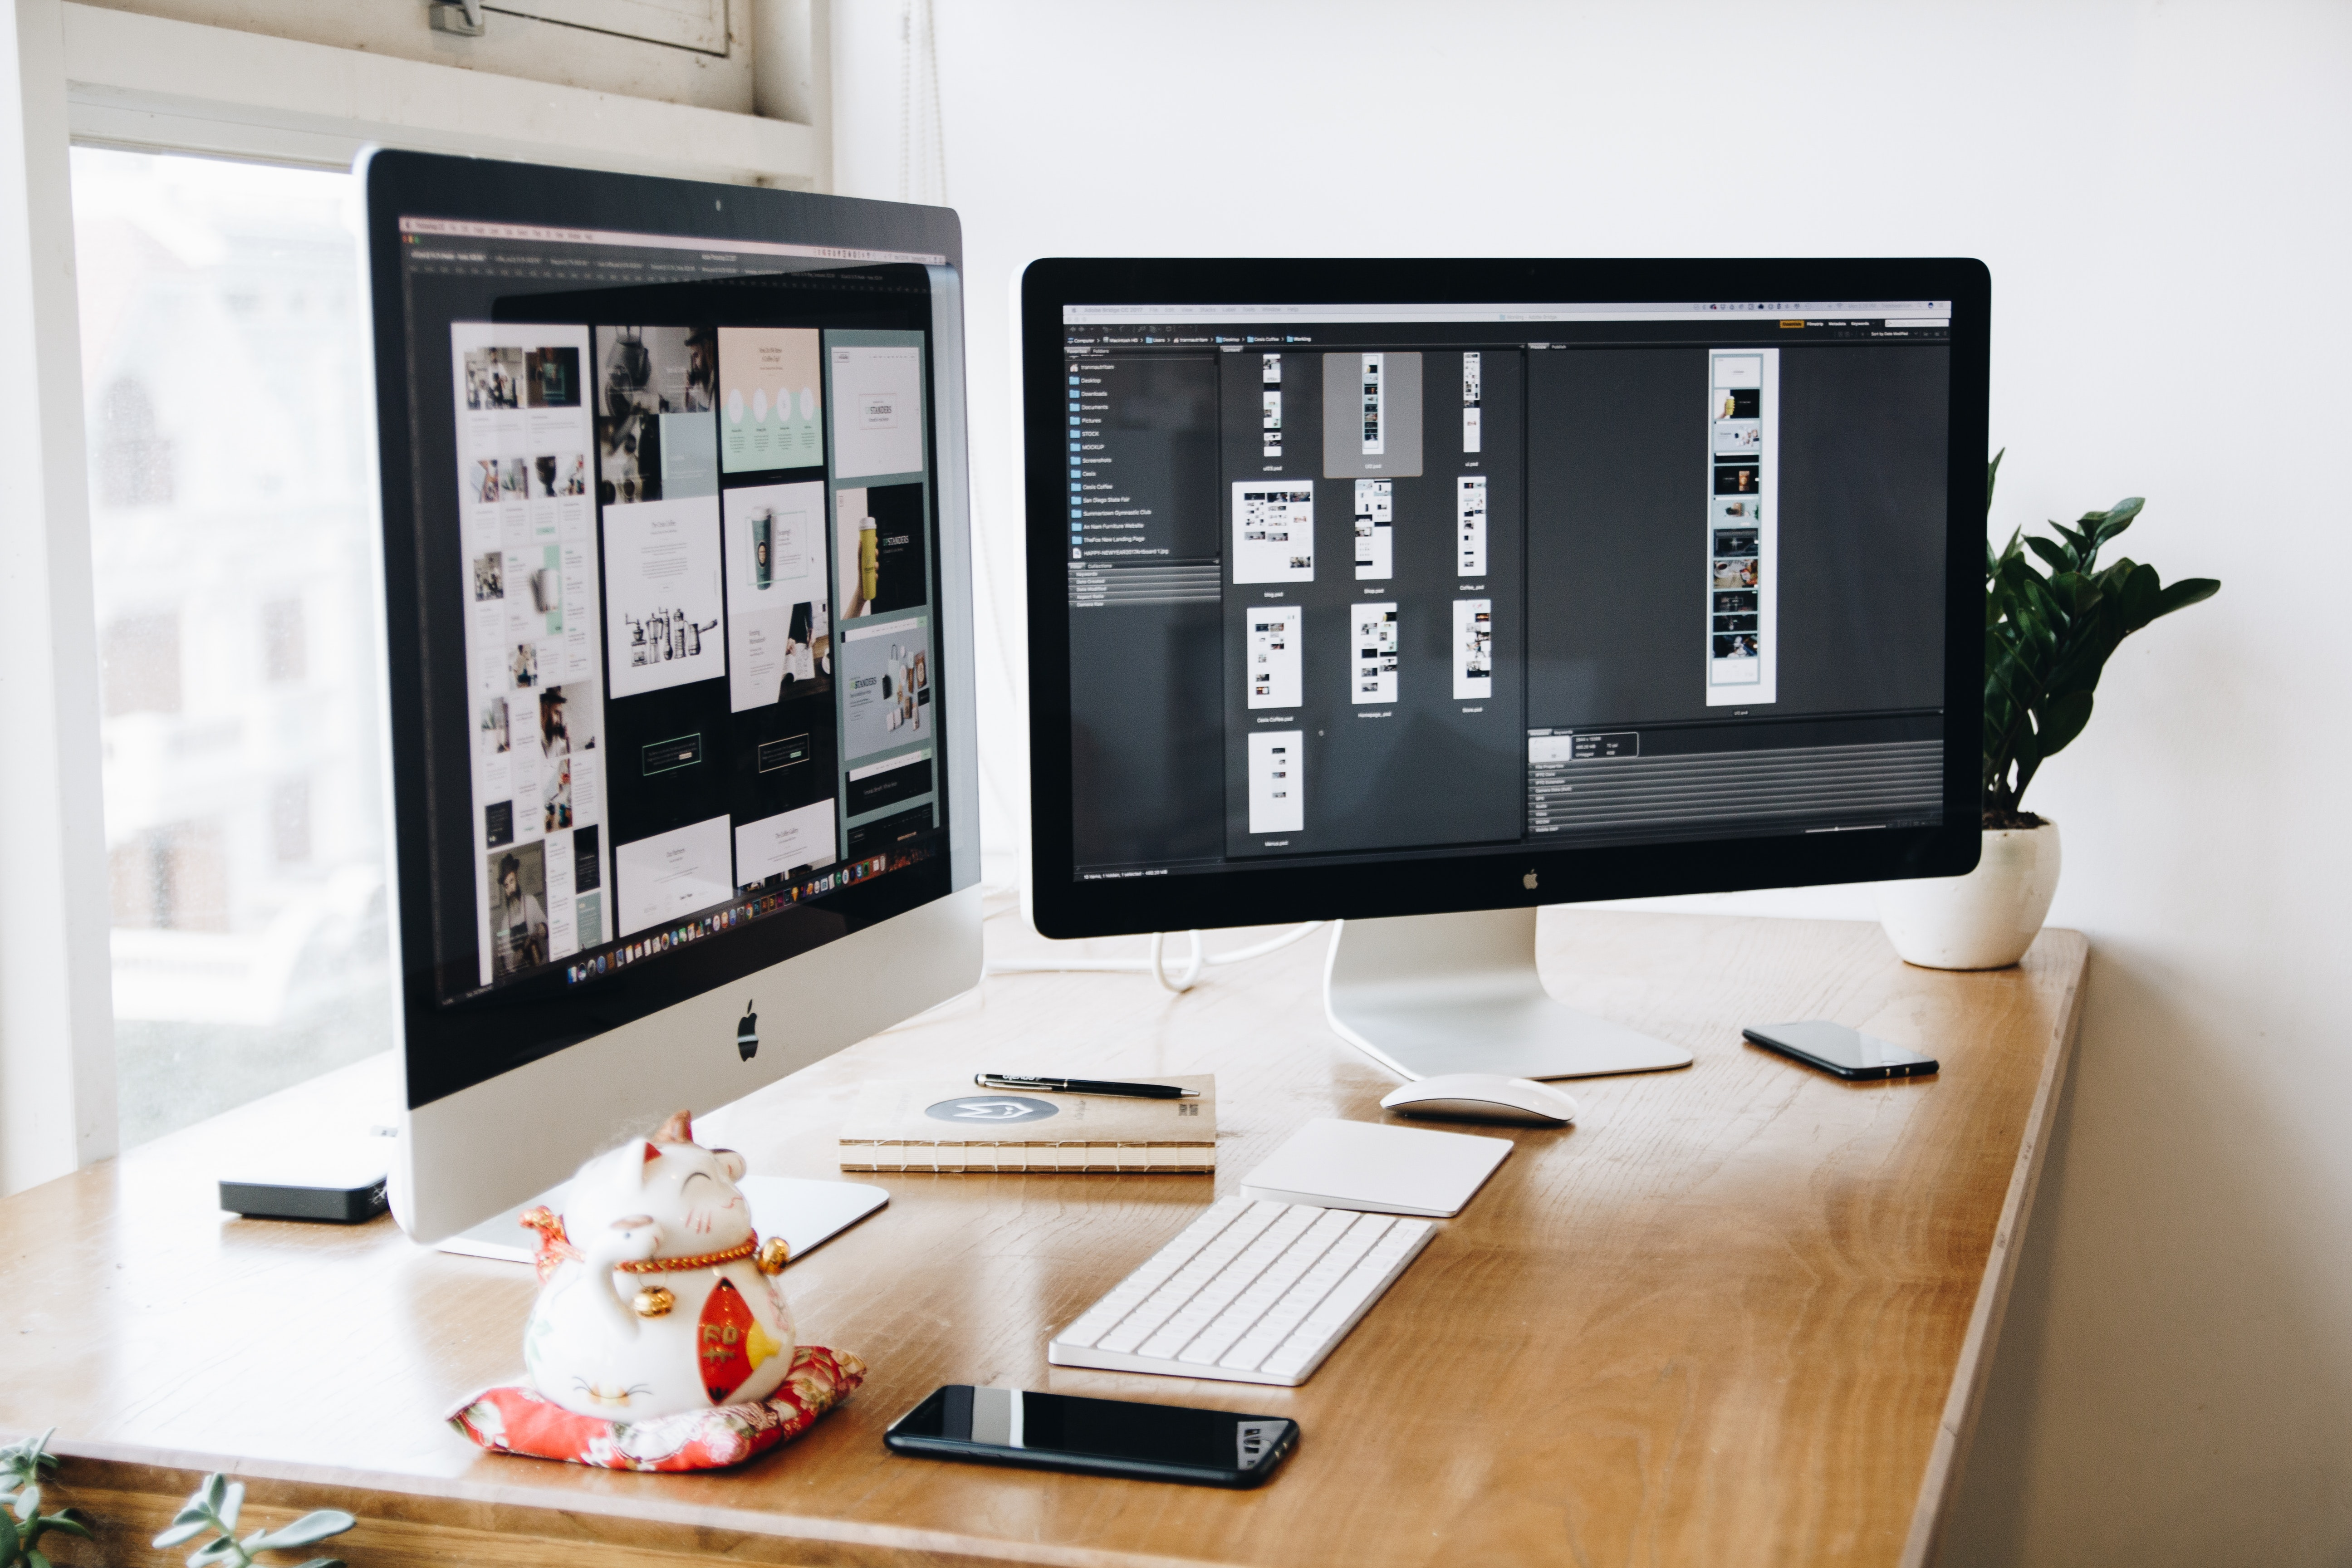 Image of two Imac's on a desk within a creative workspace.